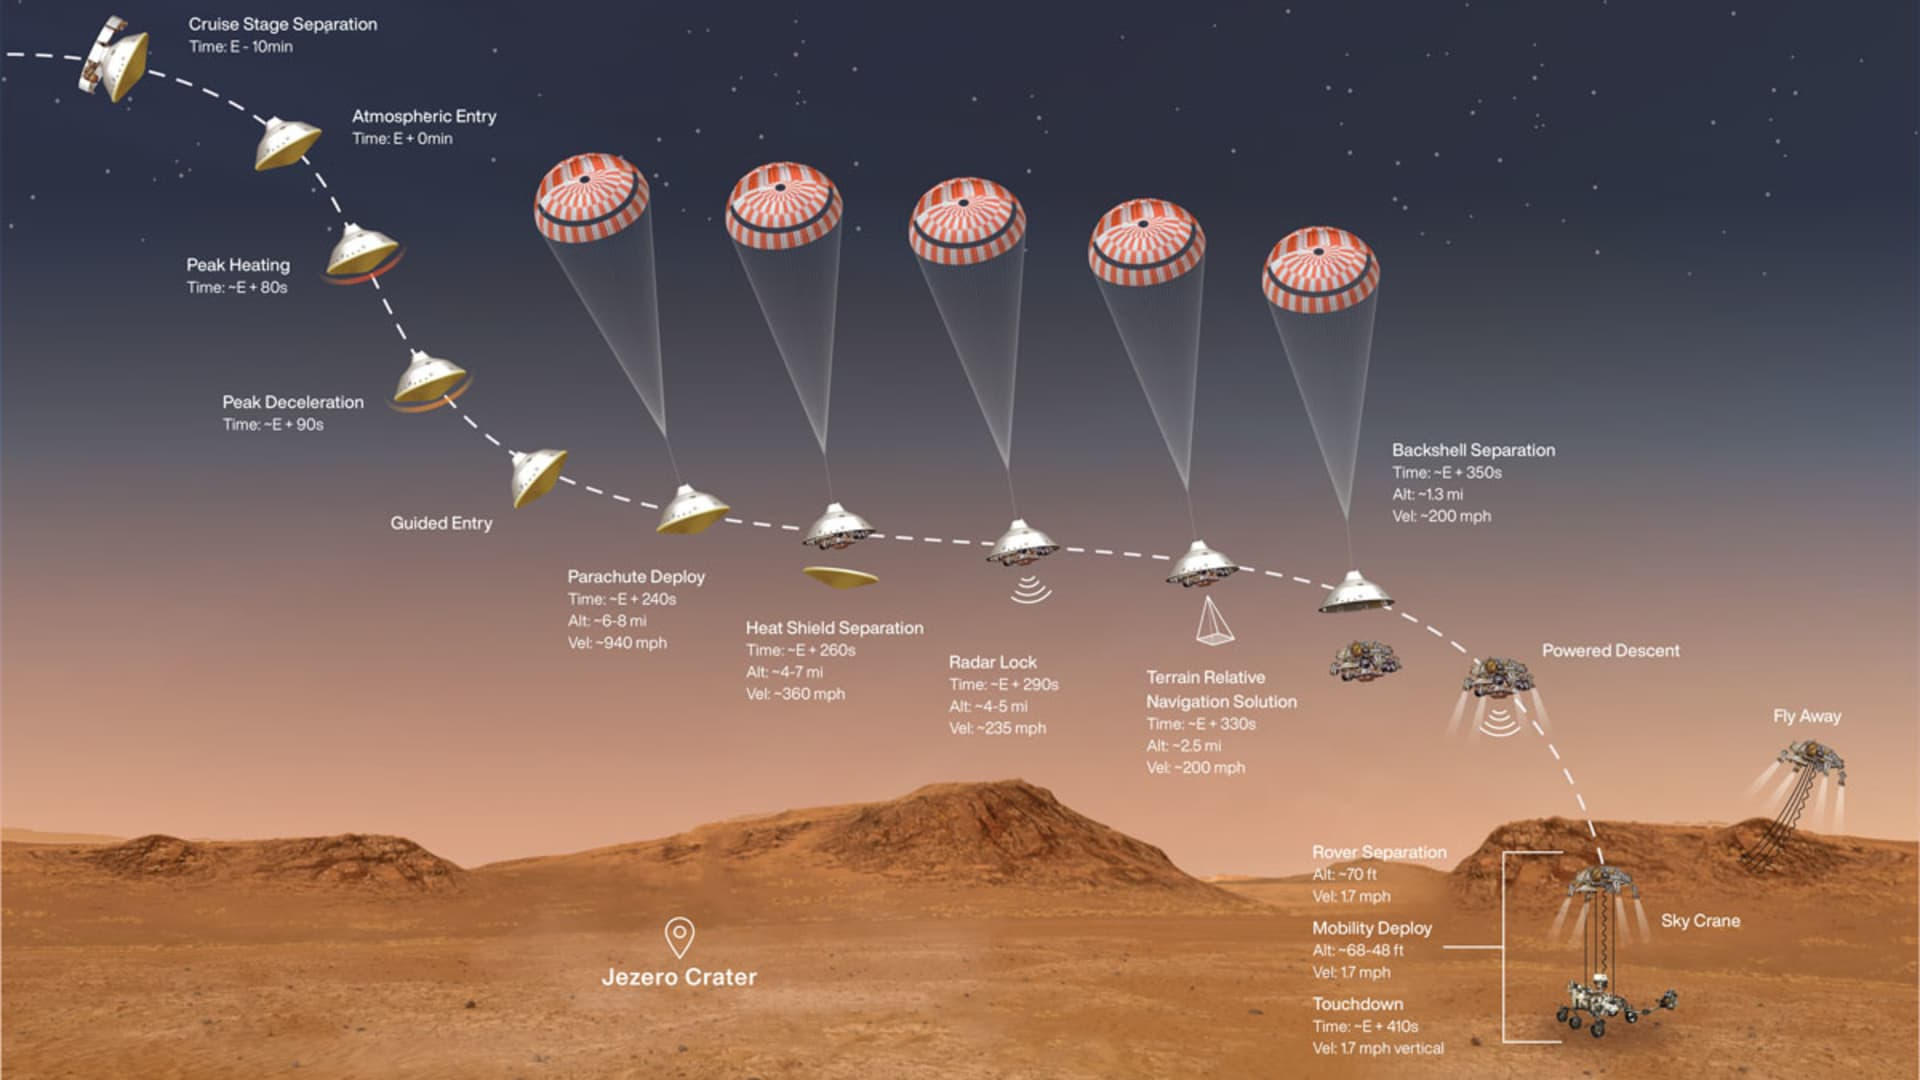 This illustration shows the events that occur in the final minutes of the nearly seven-month journey that NASA's Perseverance rover takes to Mars